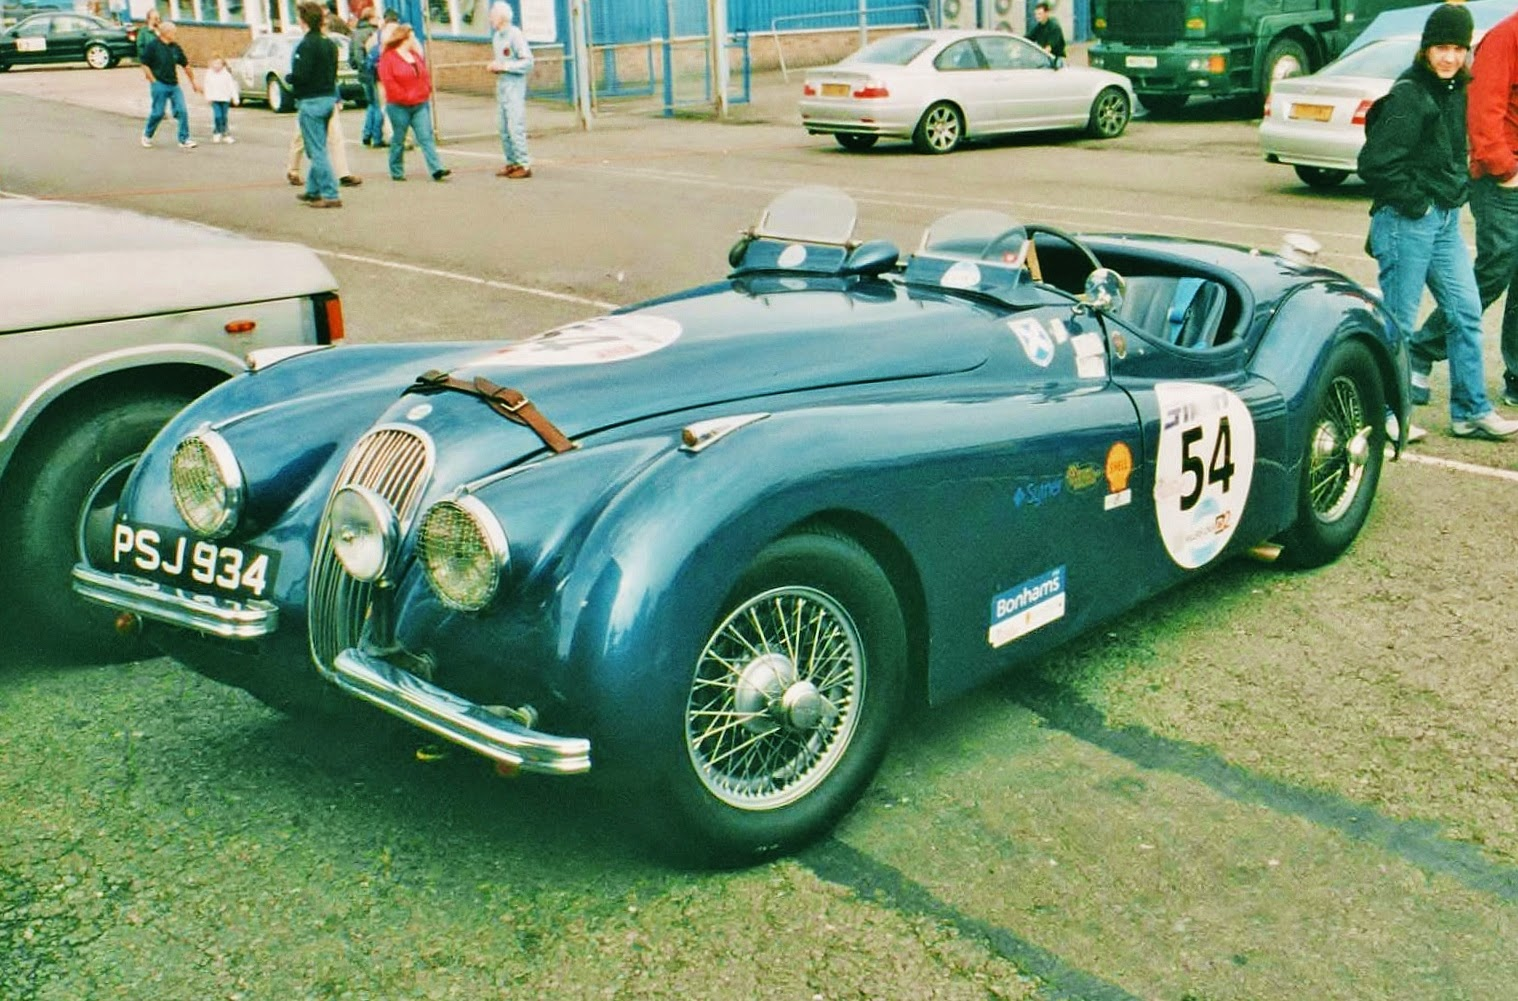 Ferraris And Other Things Jaguars Cars With Jaguar Engines 1950s S This Is A 1954 Xk120 The 3442cc Version Of Straight 6 Engine Car Was Entered Driven In Hgpca Race For Pre 1959 Drum Braked